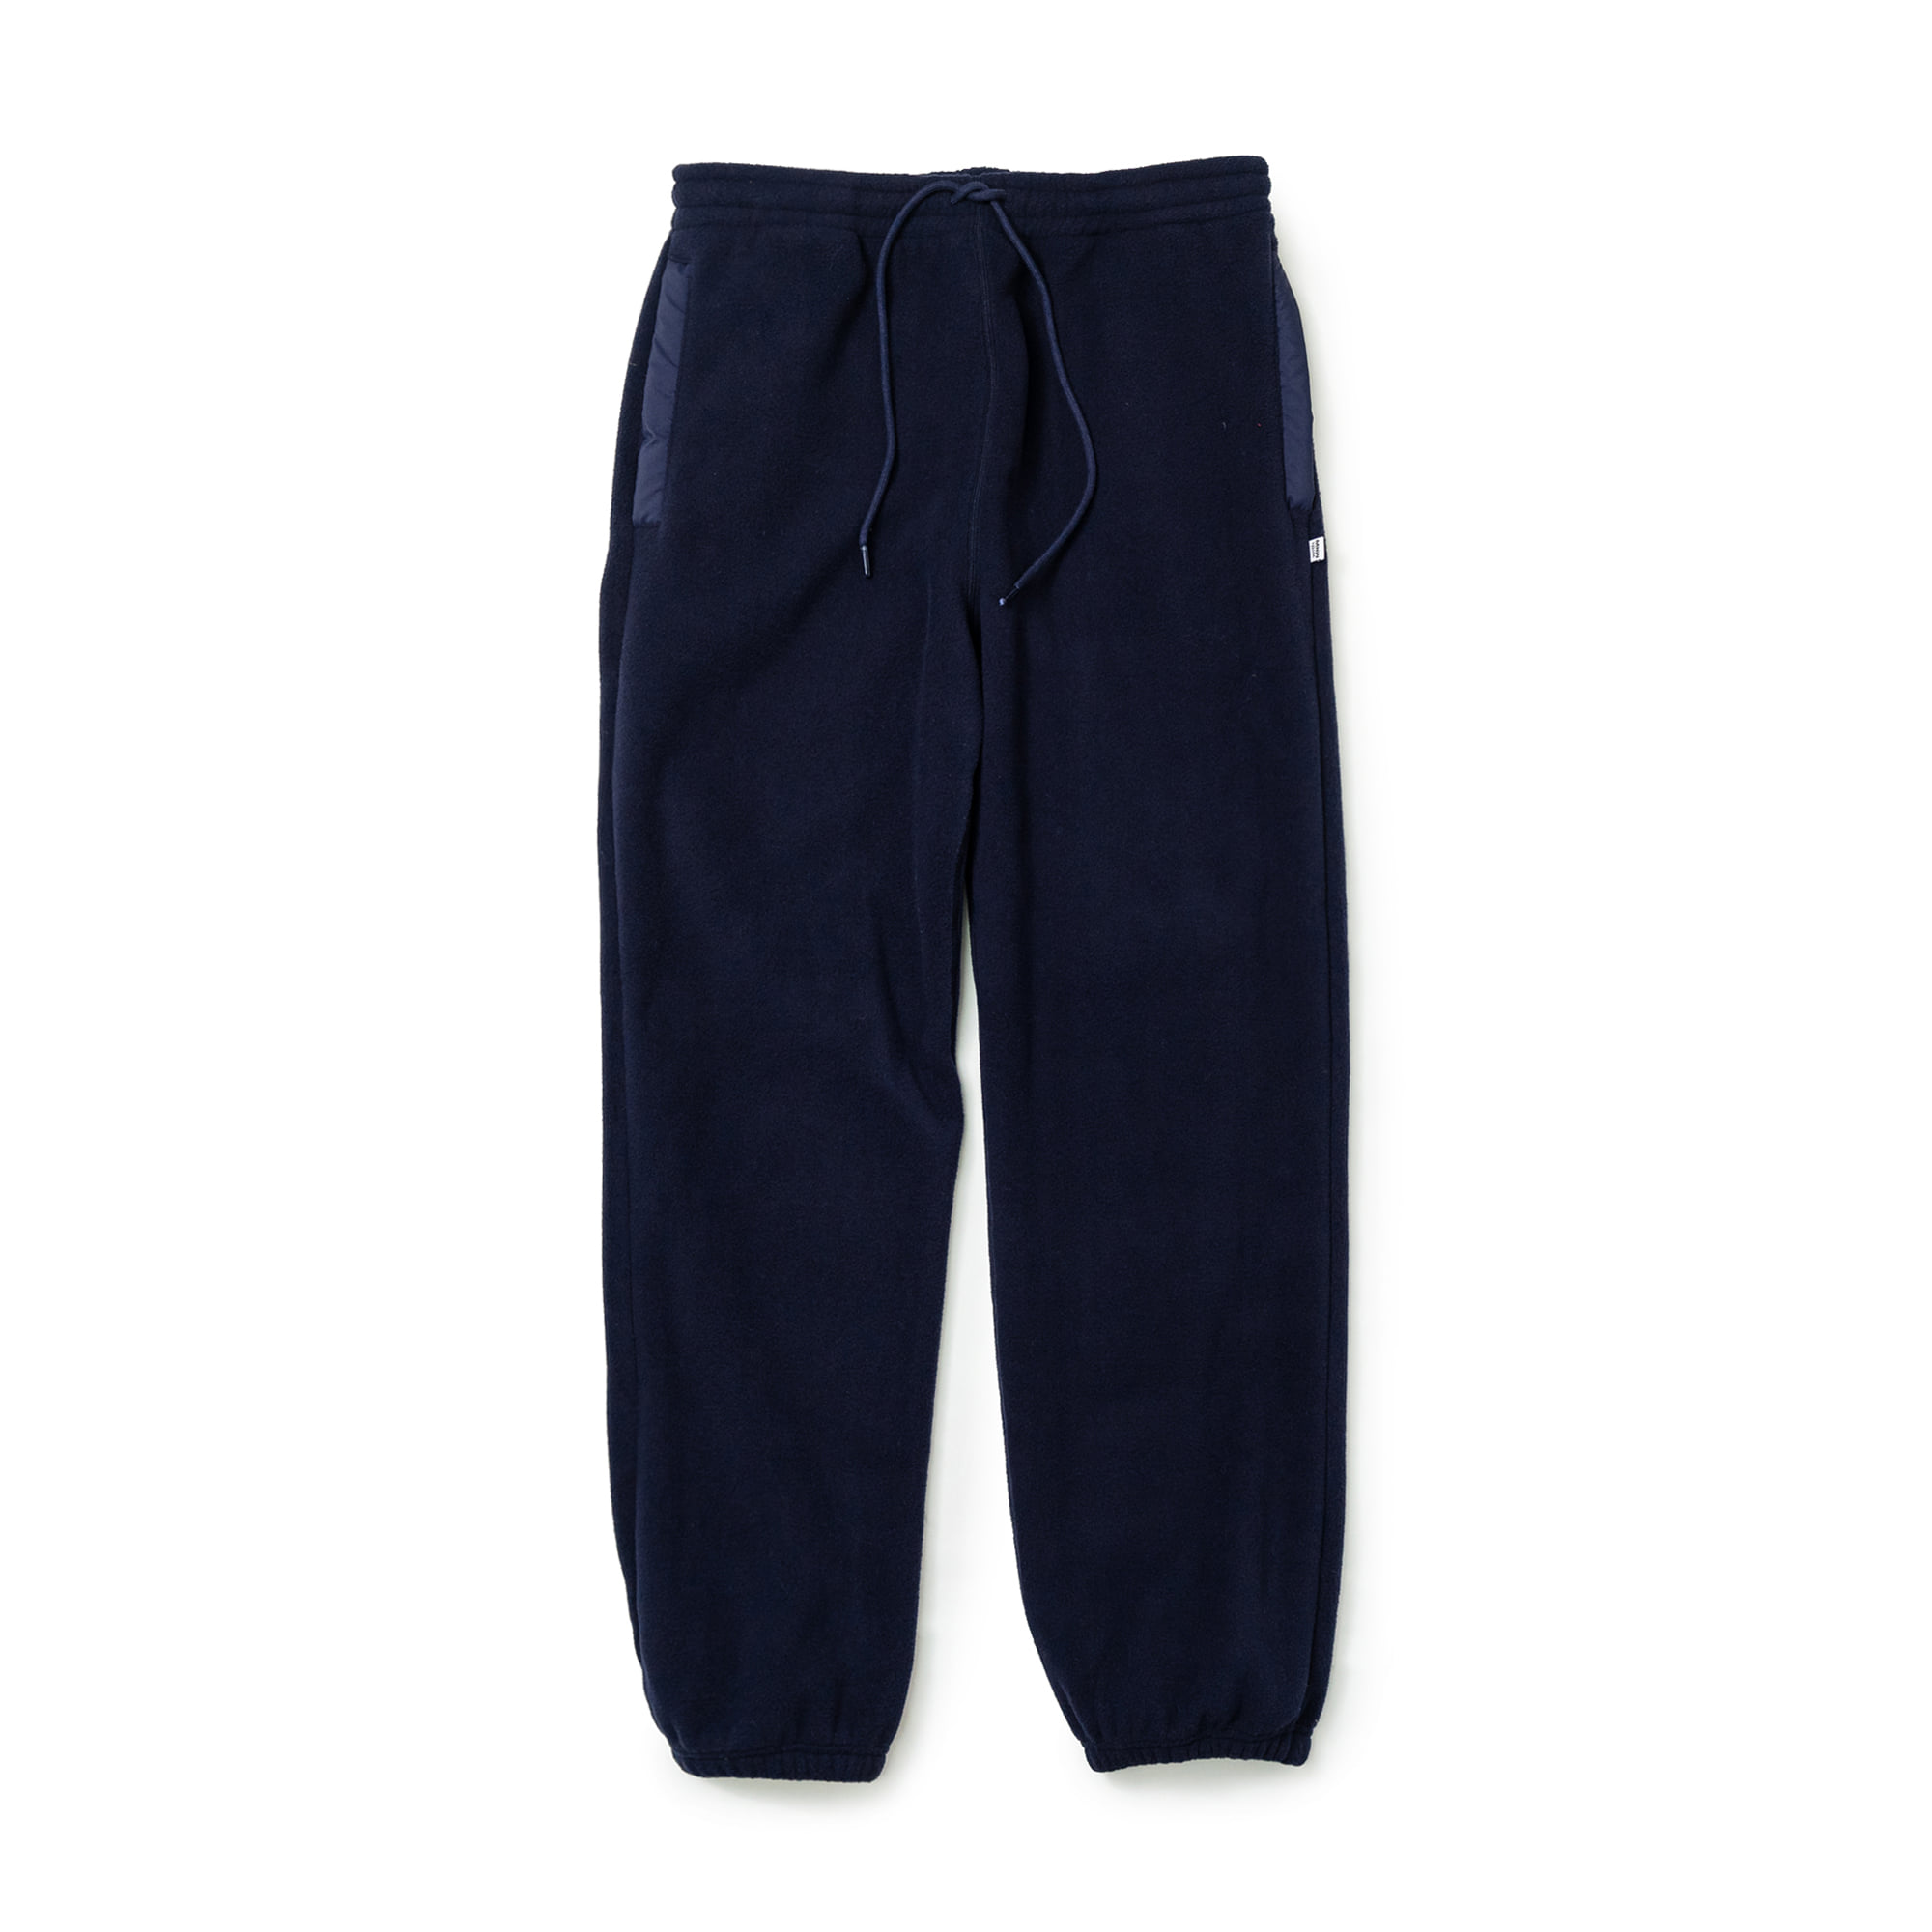 FLEECE PANTS NAVY